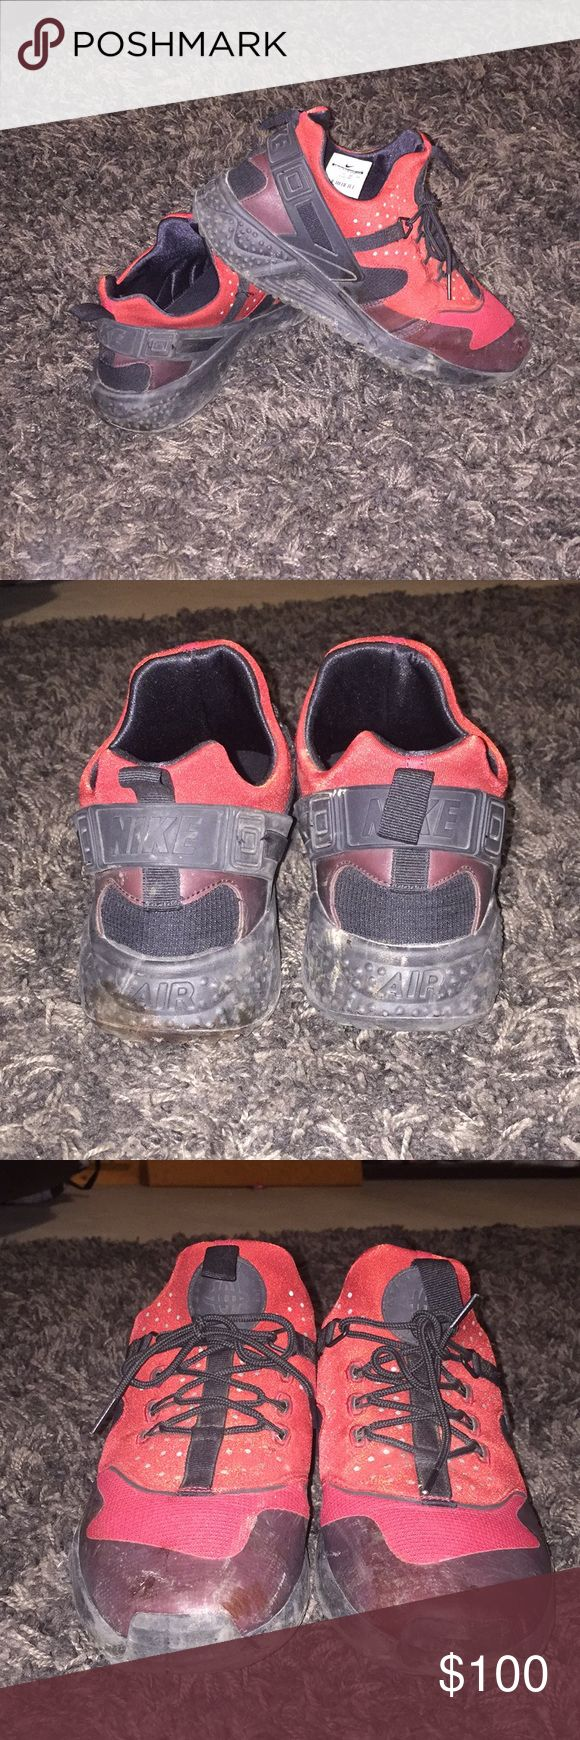 Red Nike huaraches A little dirty but in good shape size 11 Nike Shoes Athletic Shoes